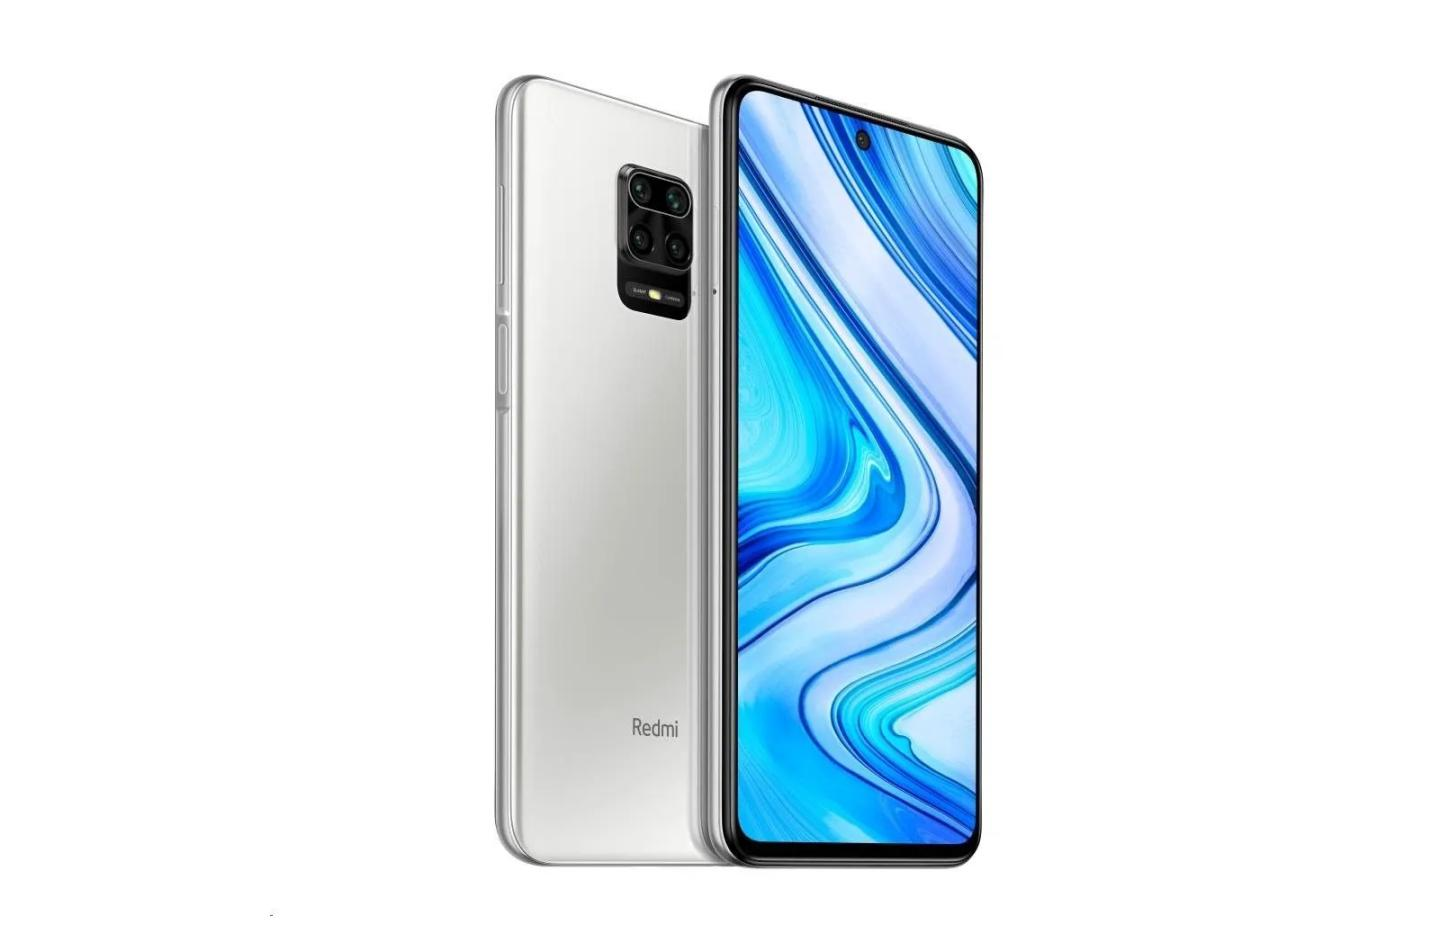 La version 128 Go du Xiaomi Redmi Note 9 Pro avec 100 euros de réduction